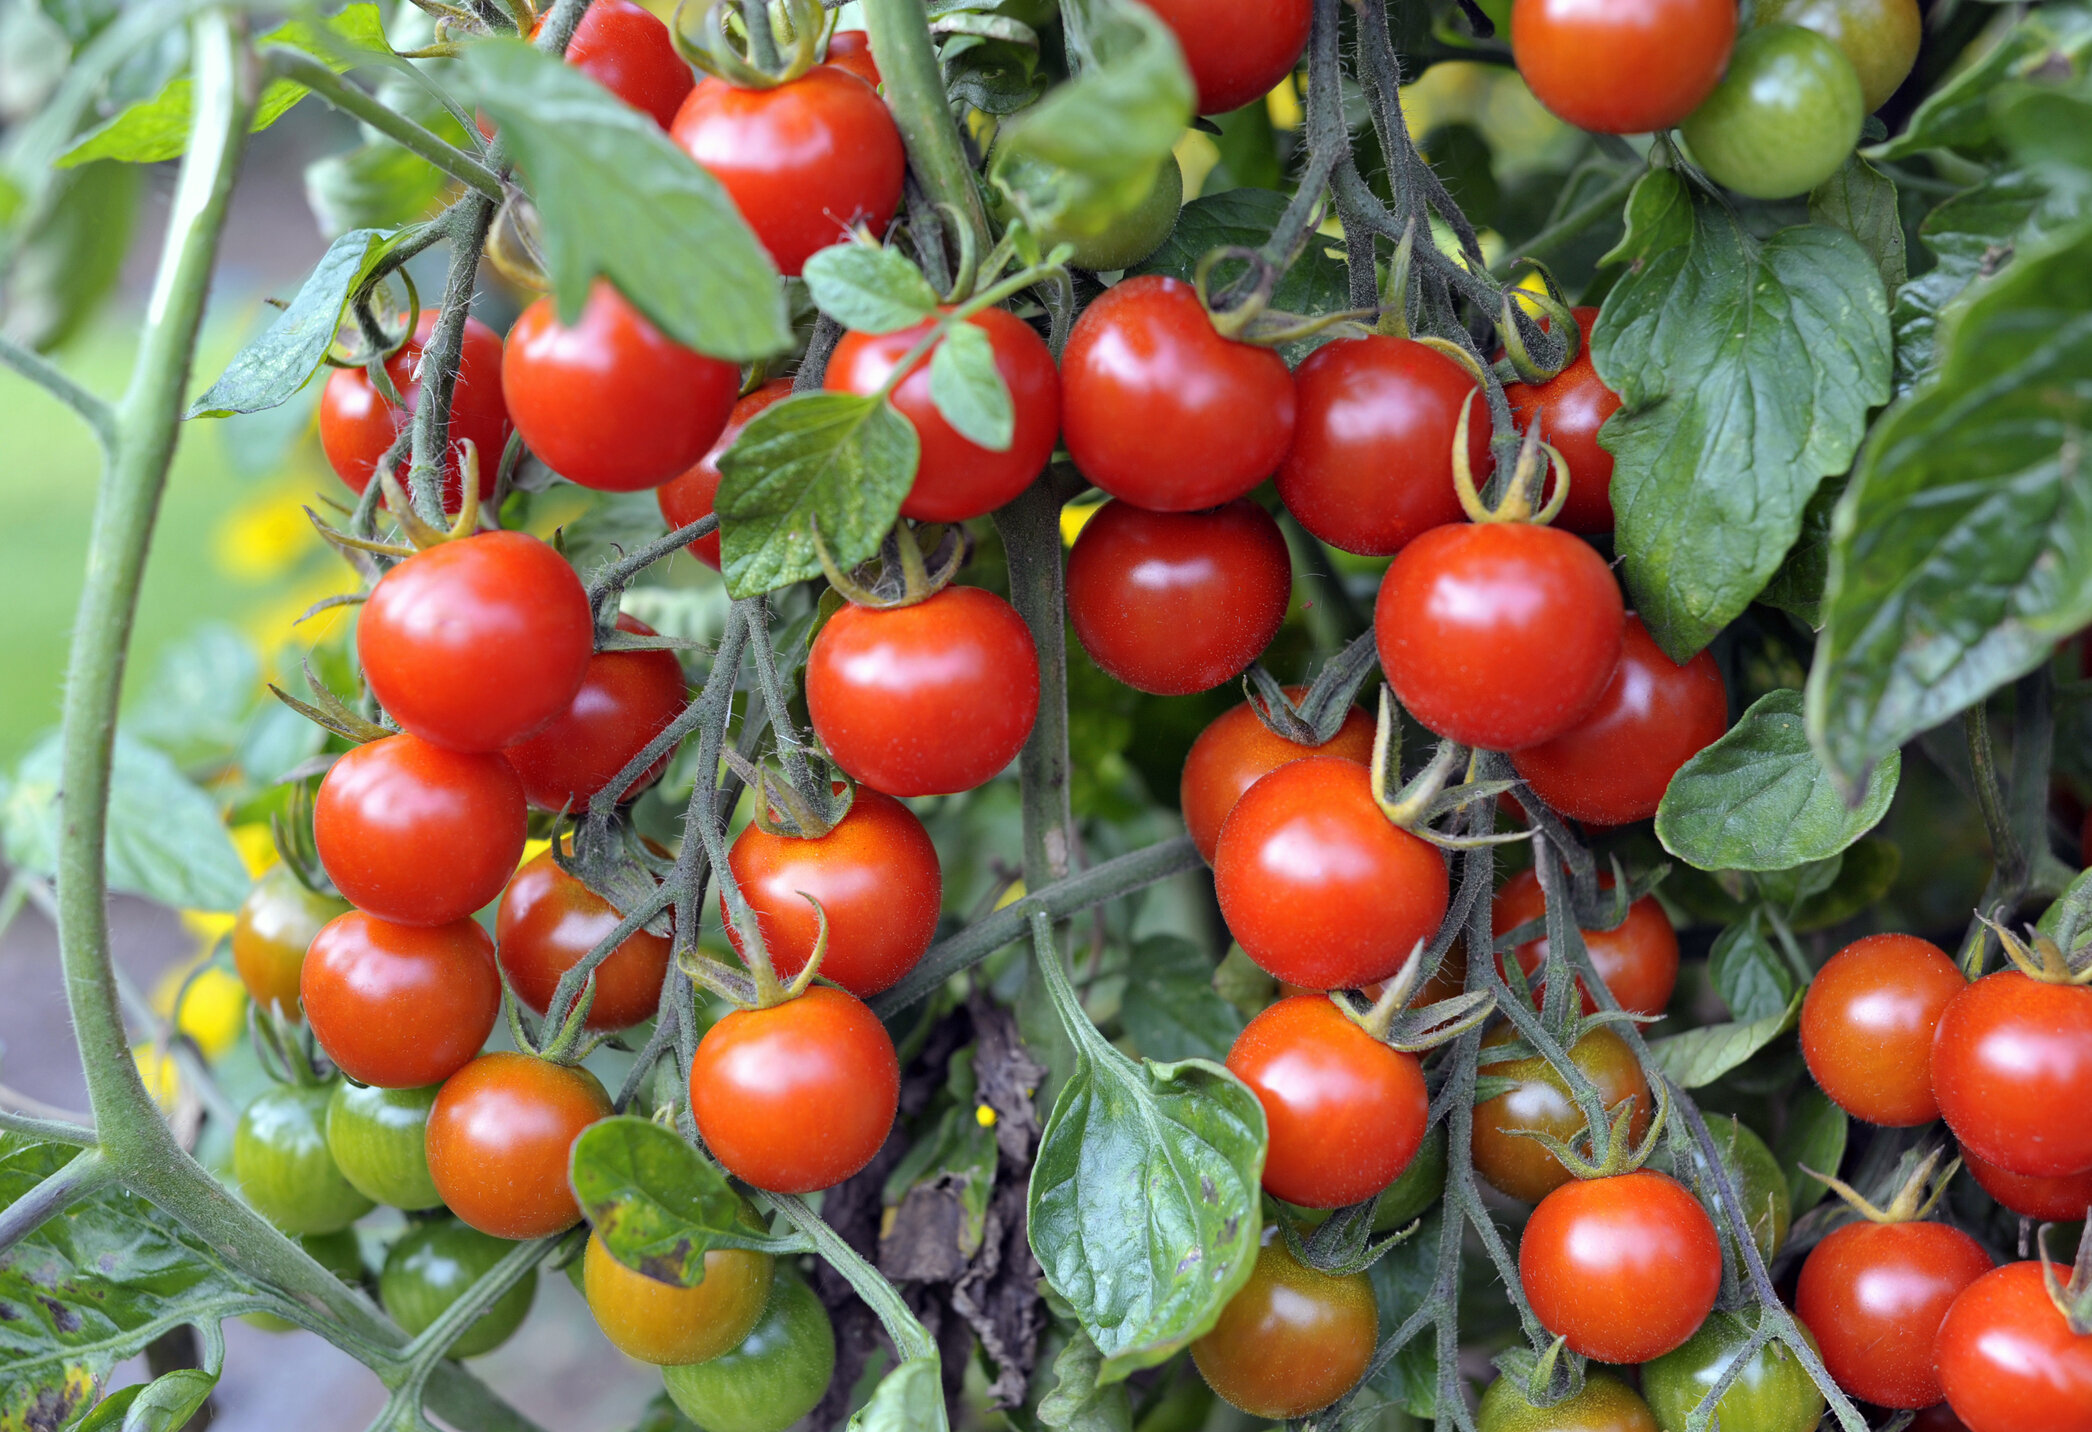 Cherry tomatoes are a must in any beginner gardener's garden. They are prolific producers and often reseed, giving the gardener a second bountiful year. There are blight reisitant varities. Be sure to ask.